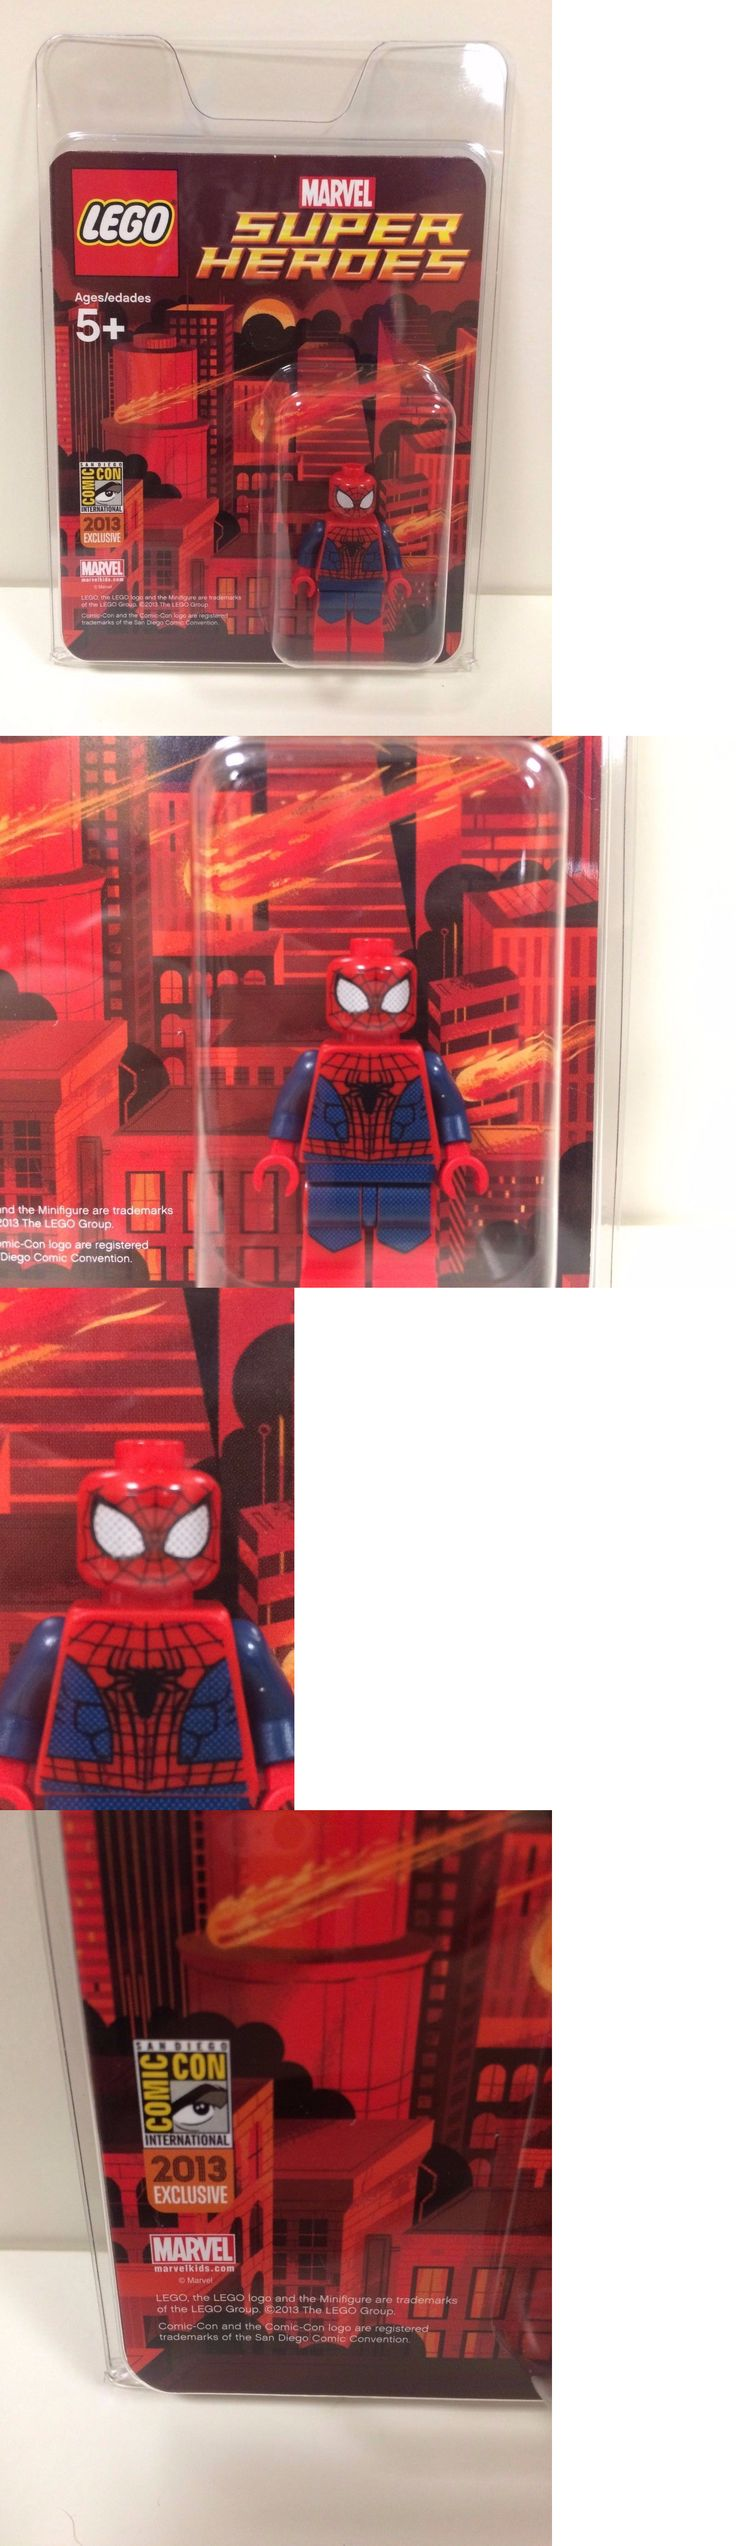 Minifigures 19001: Lego Comic Con Sdcc 2013 Spider-Man Authentic W Pack Authentic 1 Of 350 Rare -> BUY IT NOW ONLY: $3000 on eBay!